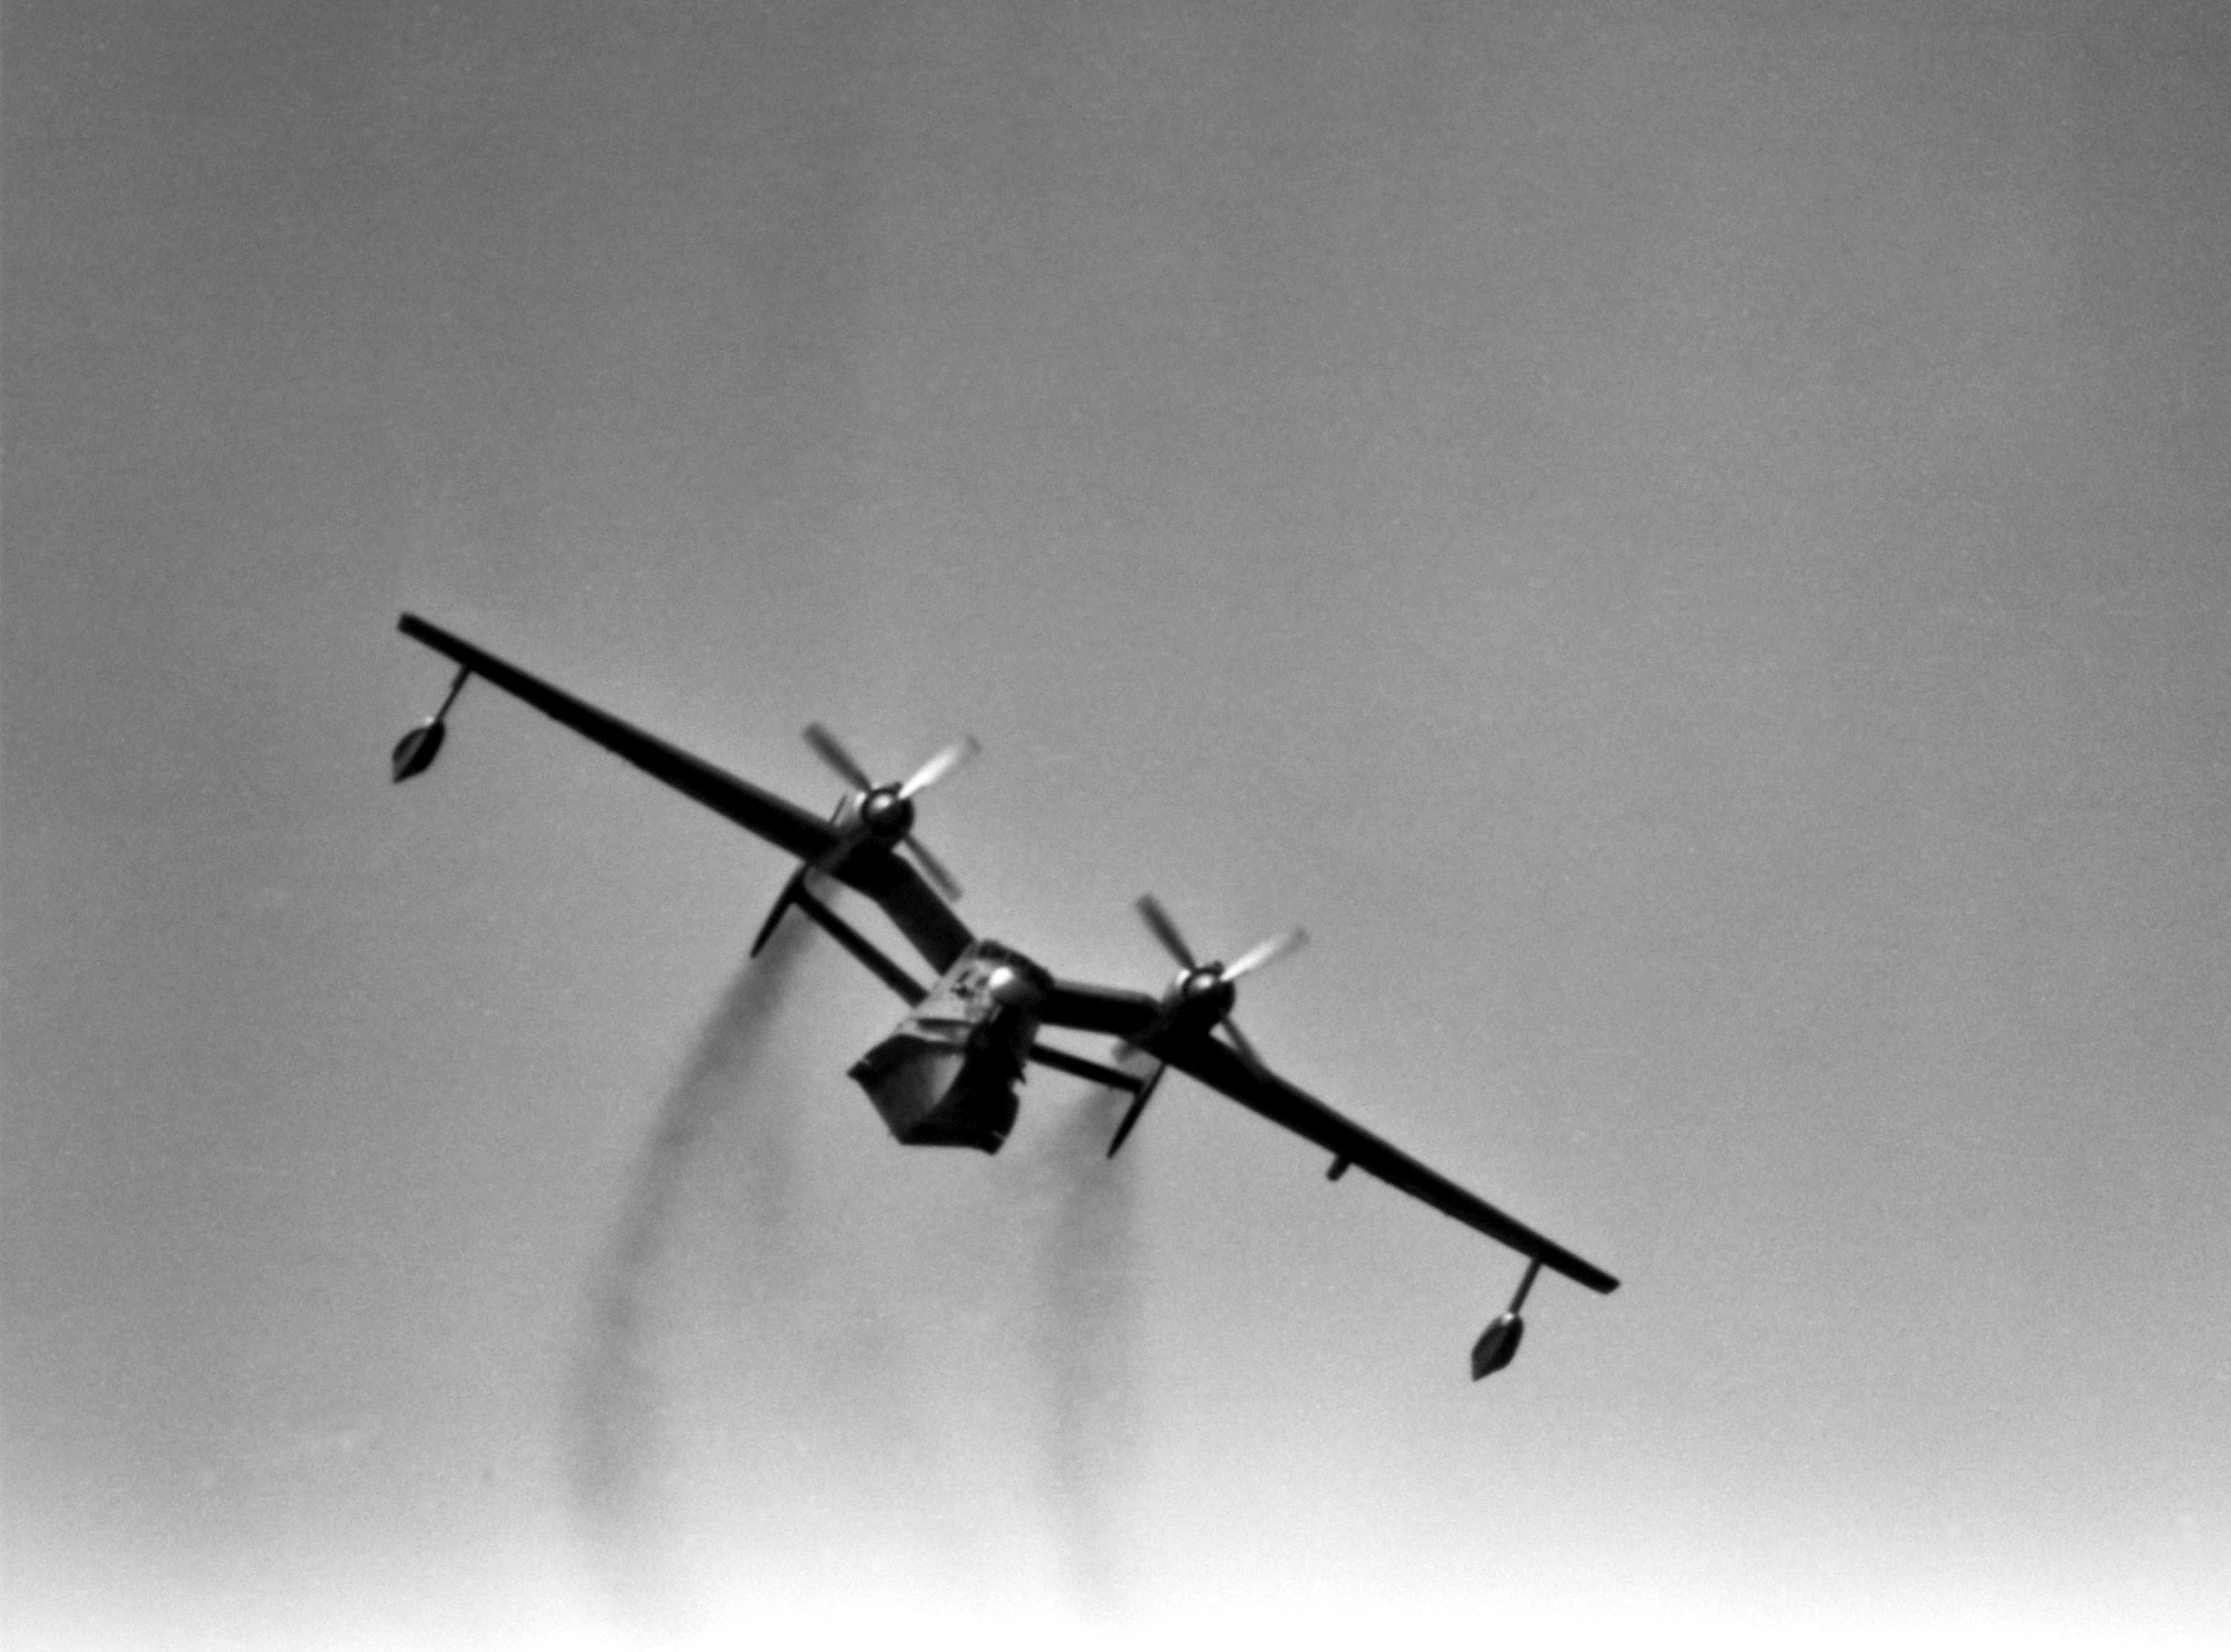 A front view of a Soviet Be-12 Mail patrol/anti-submarine warfare aircraft in flight